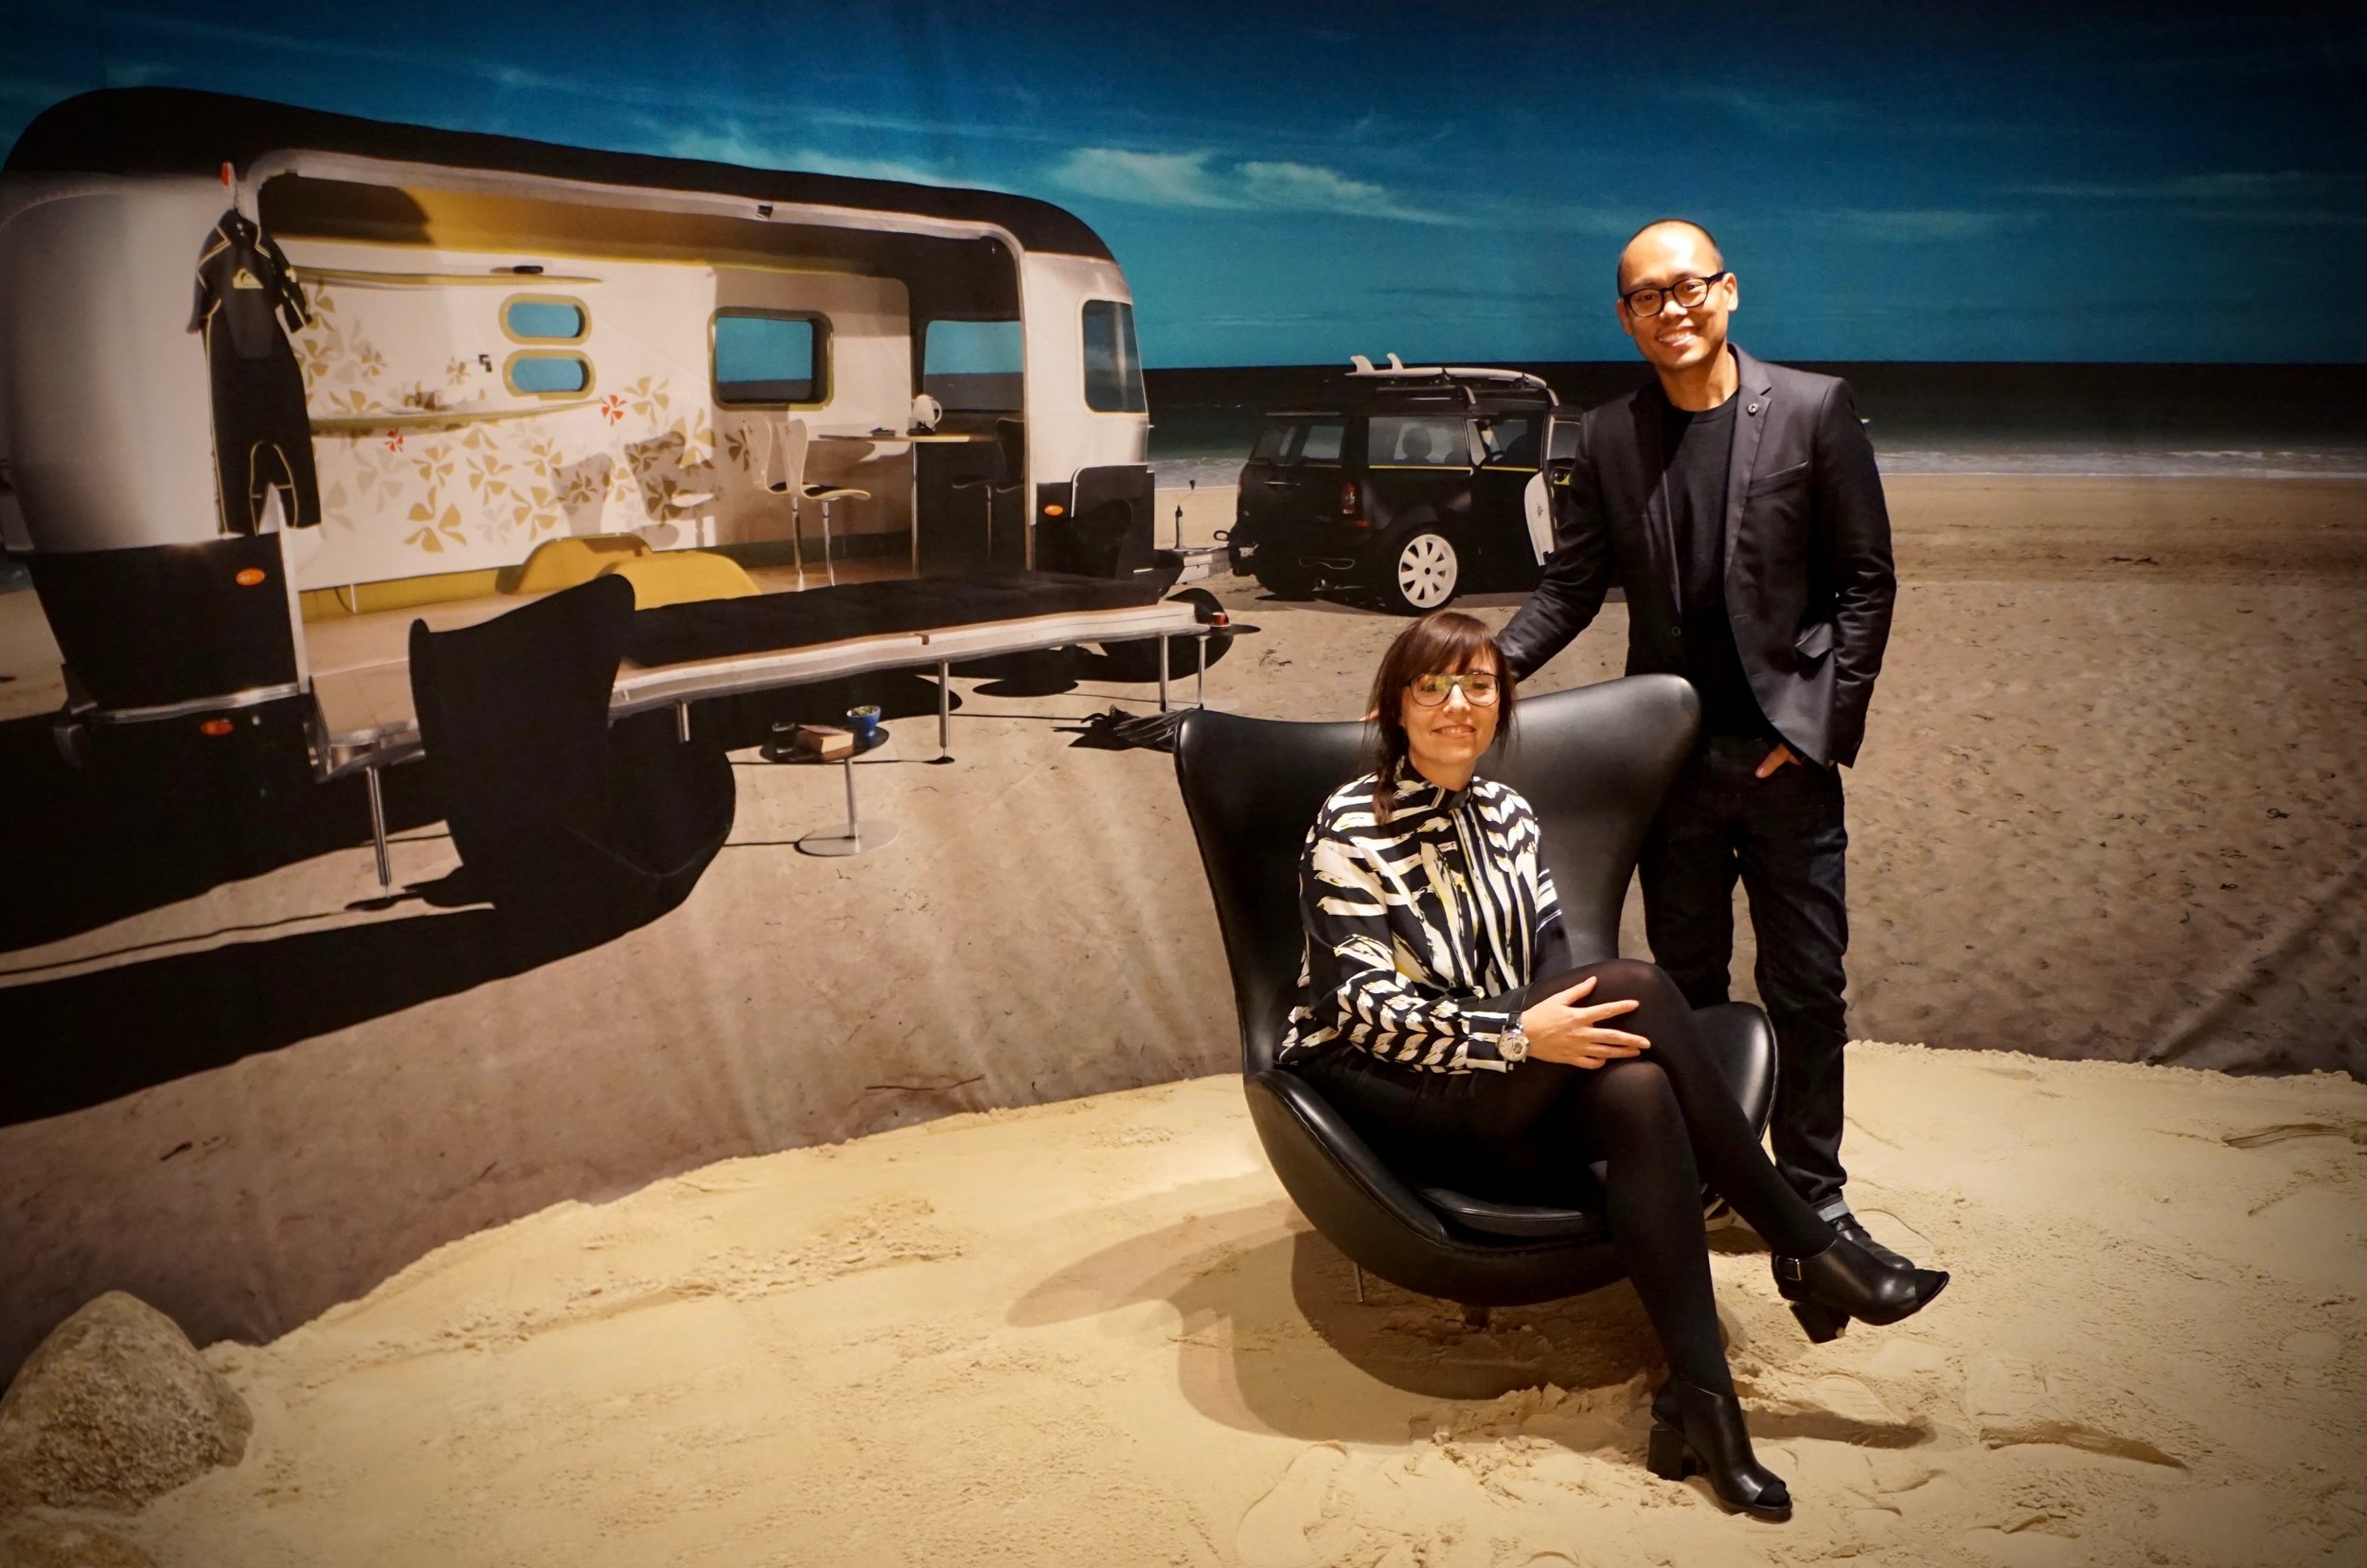 'Instant Icon' curator, Rosita Satell and Abner Aquino of CURATE featuring The Egg chair by Arne Jacobsen